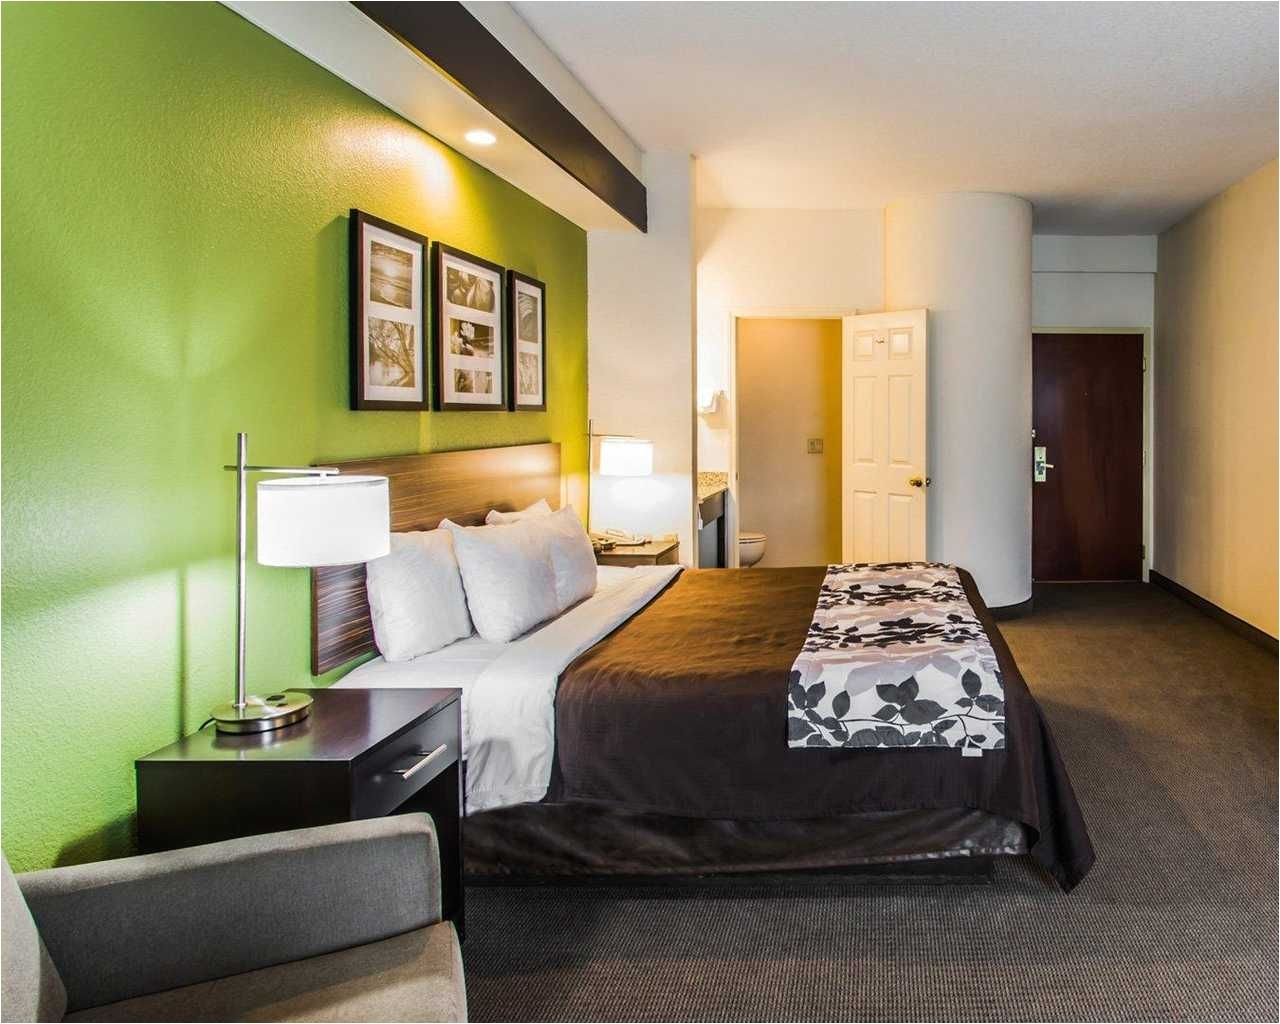 Hotels with 2 Bedroom Suites Near Disney World (With ...